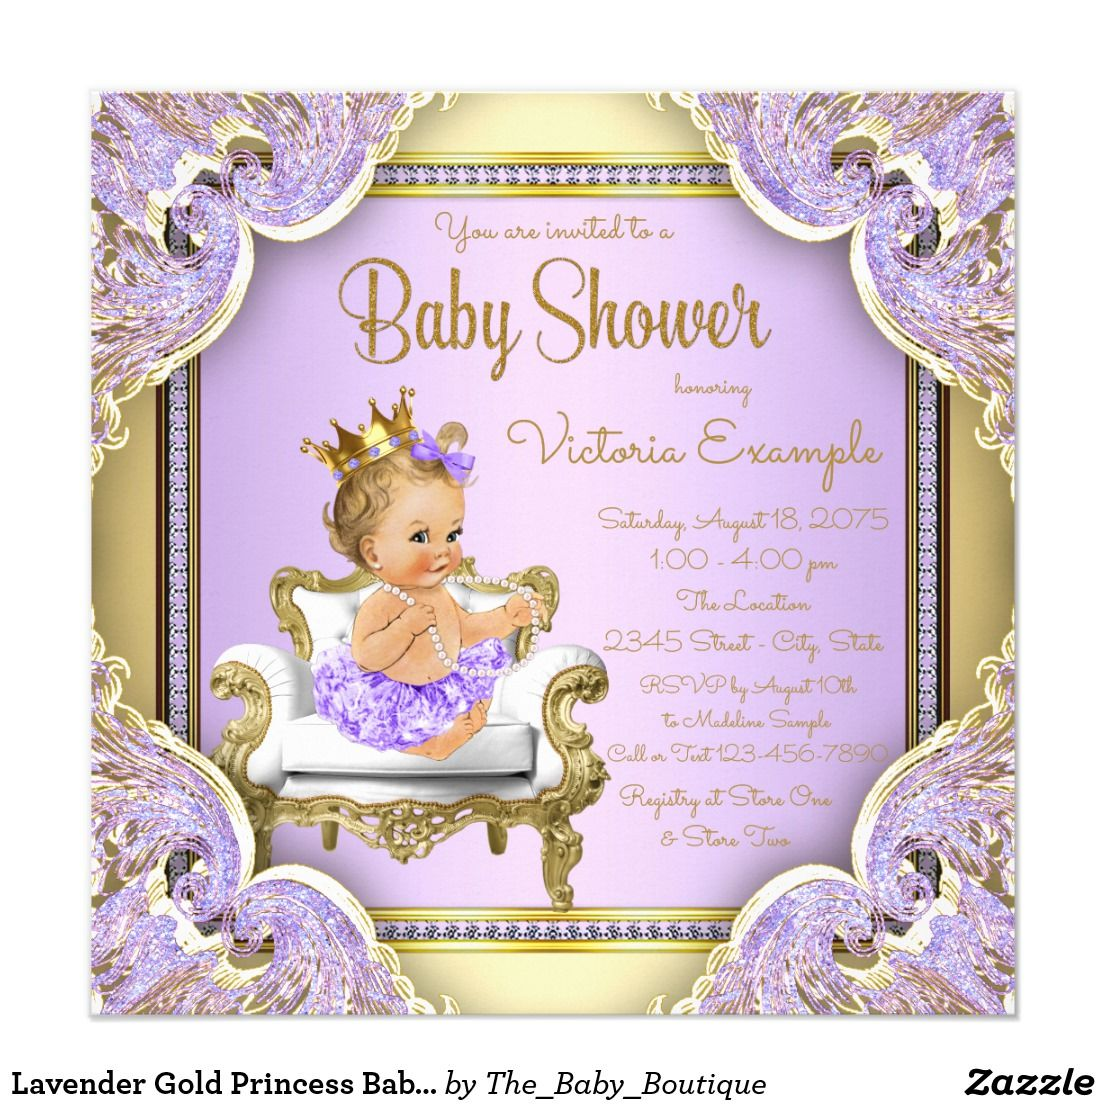 Lavender Gold Princess Baby Shower Invitations. Purple and gold baby ...